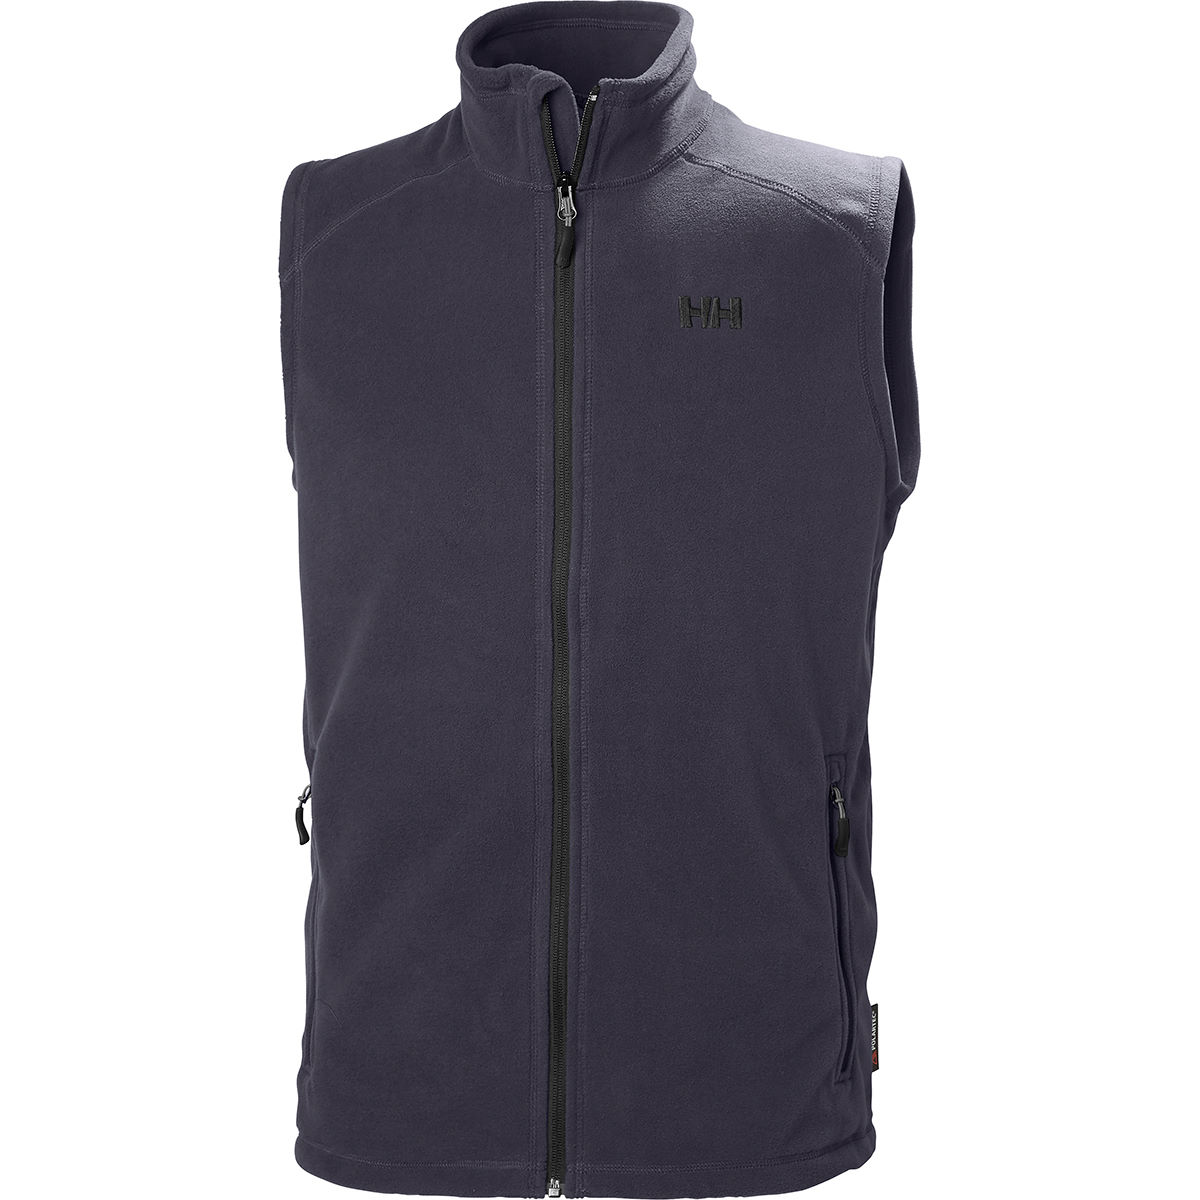 Helly Hansen Daybreaker Fleece Vest - Forros polares